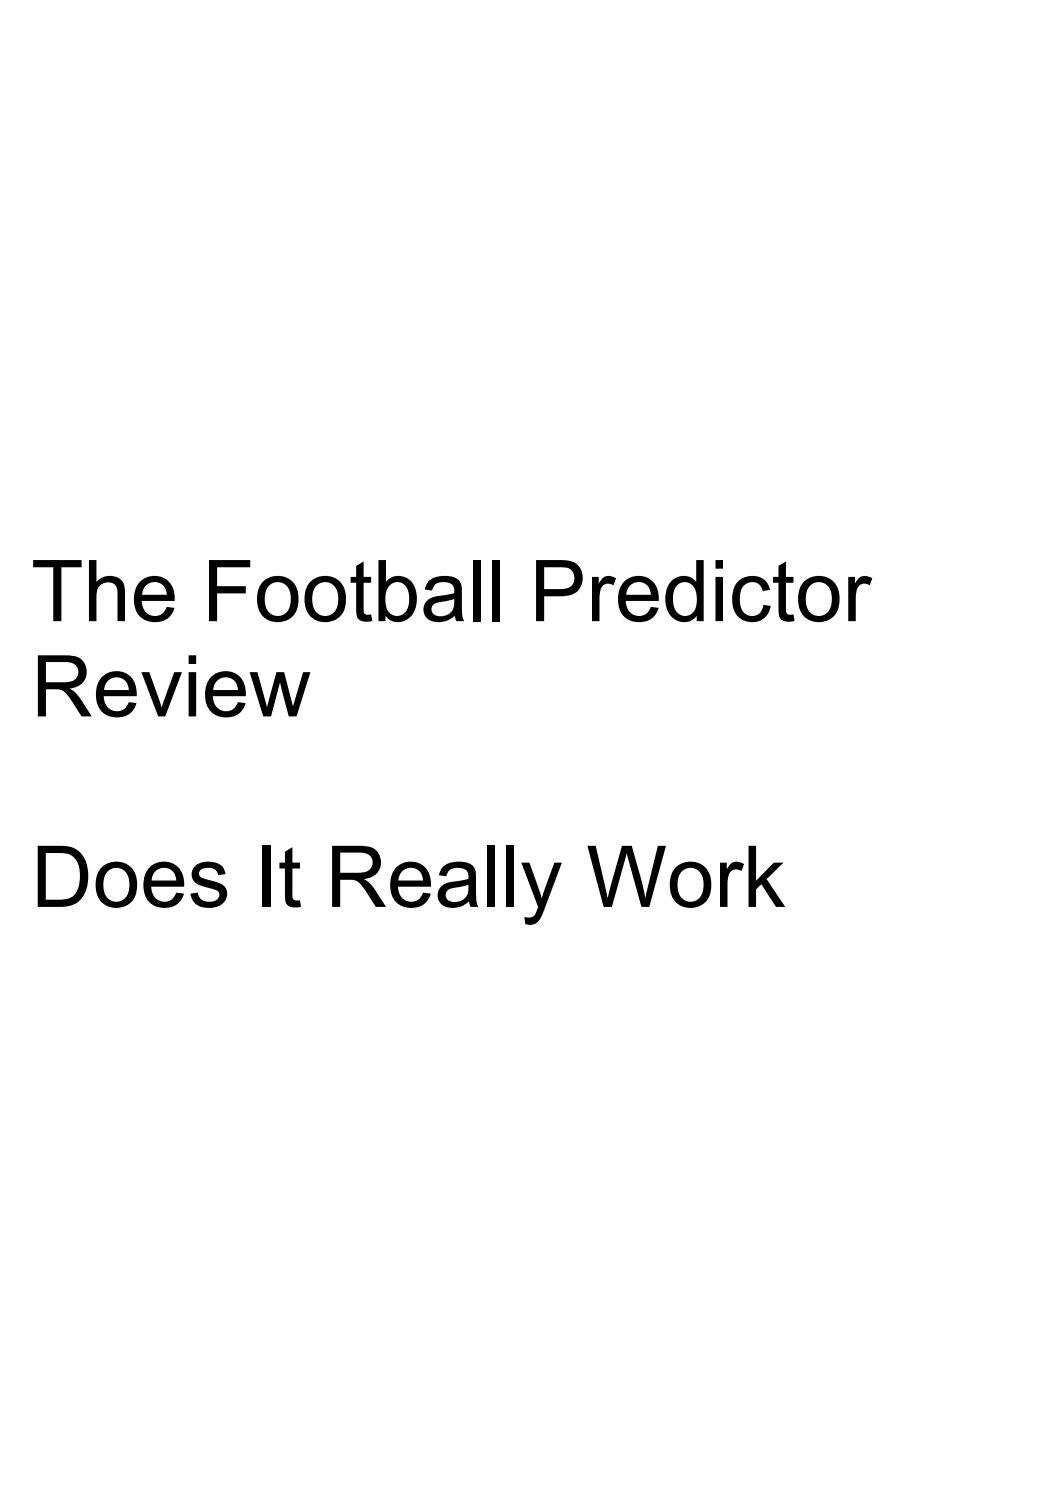 The Football Predictor Review - Does It Really Work by Does